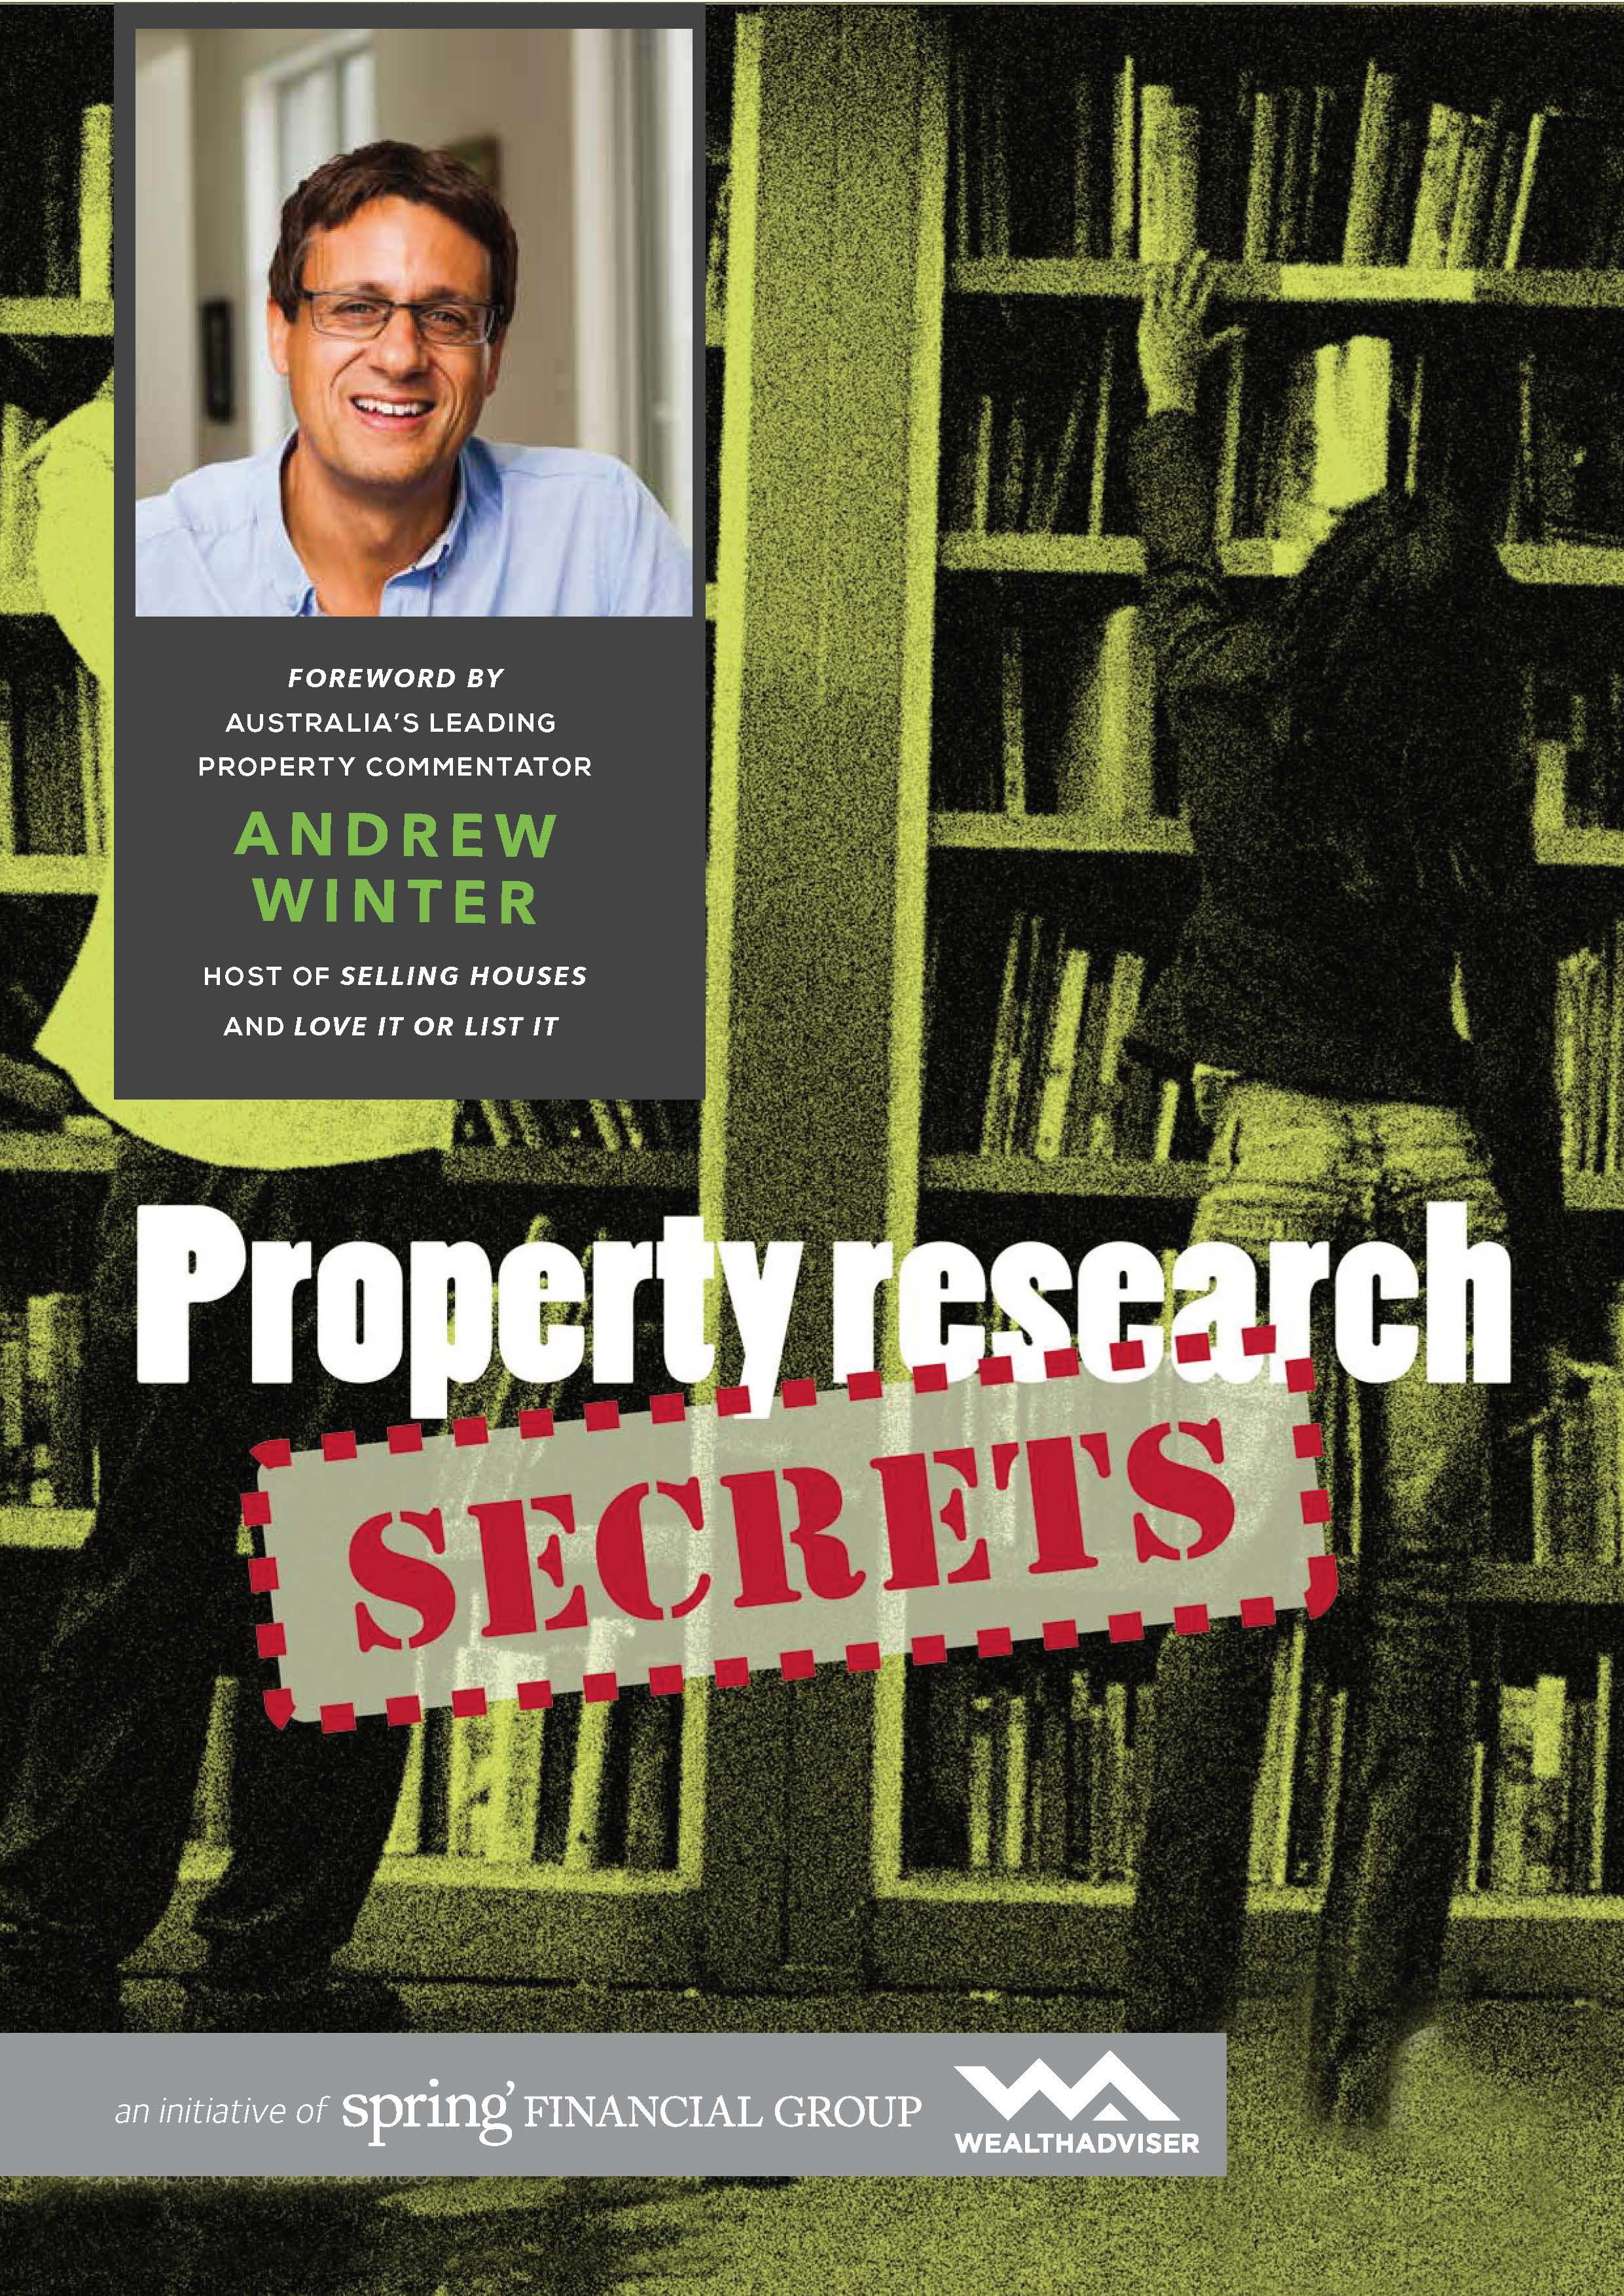 WA_Property_Research_Secrets